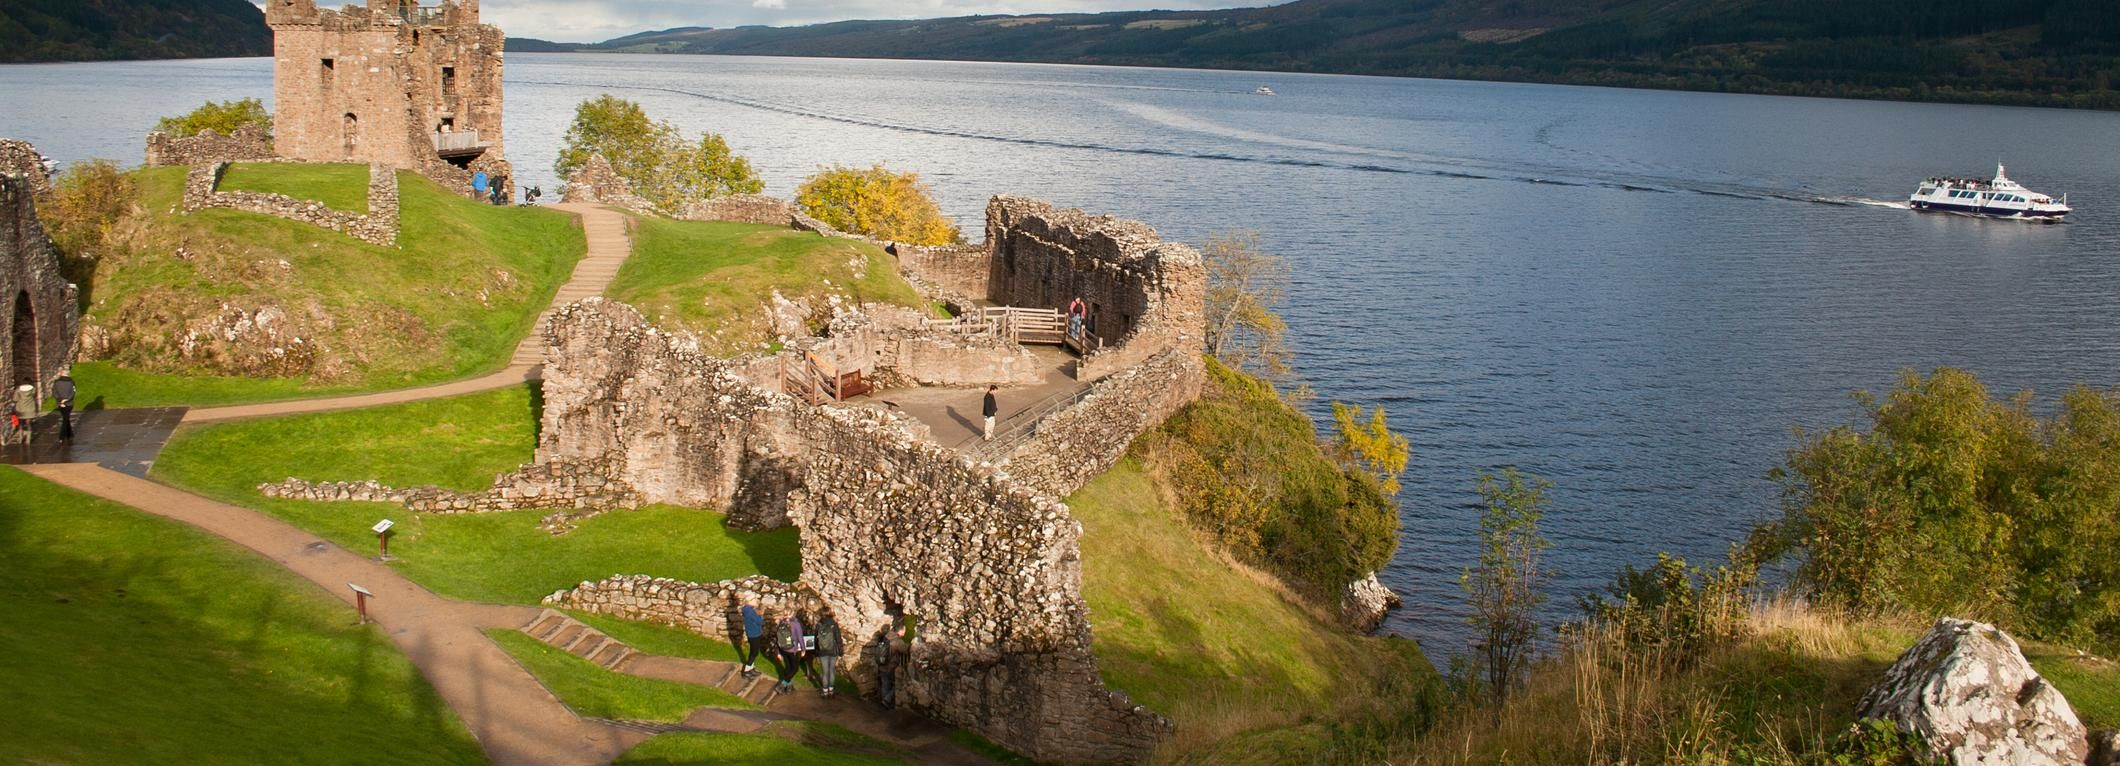 Ab Edinburgh: 2-Tages-Tour Loch Ness, Inverness & Highlands